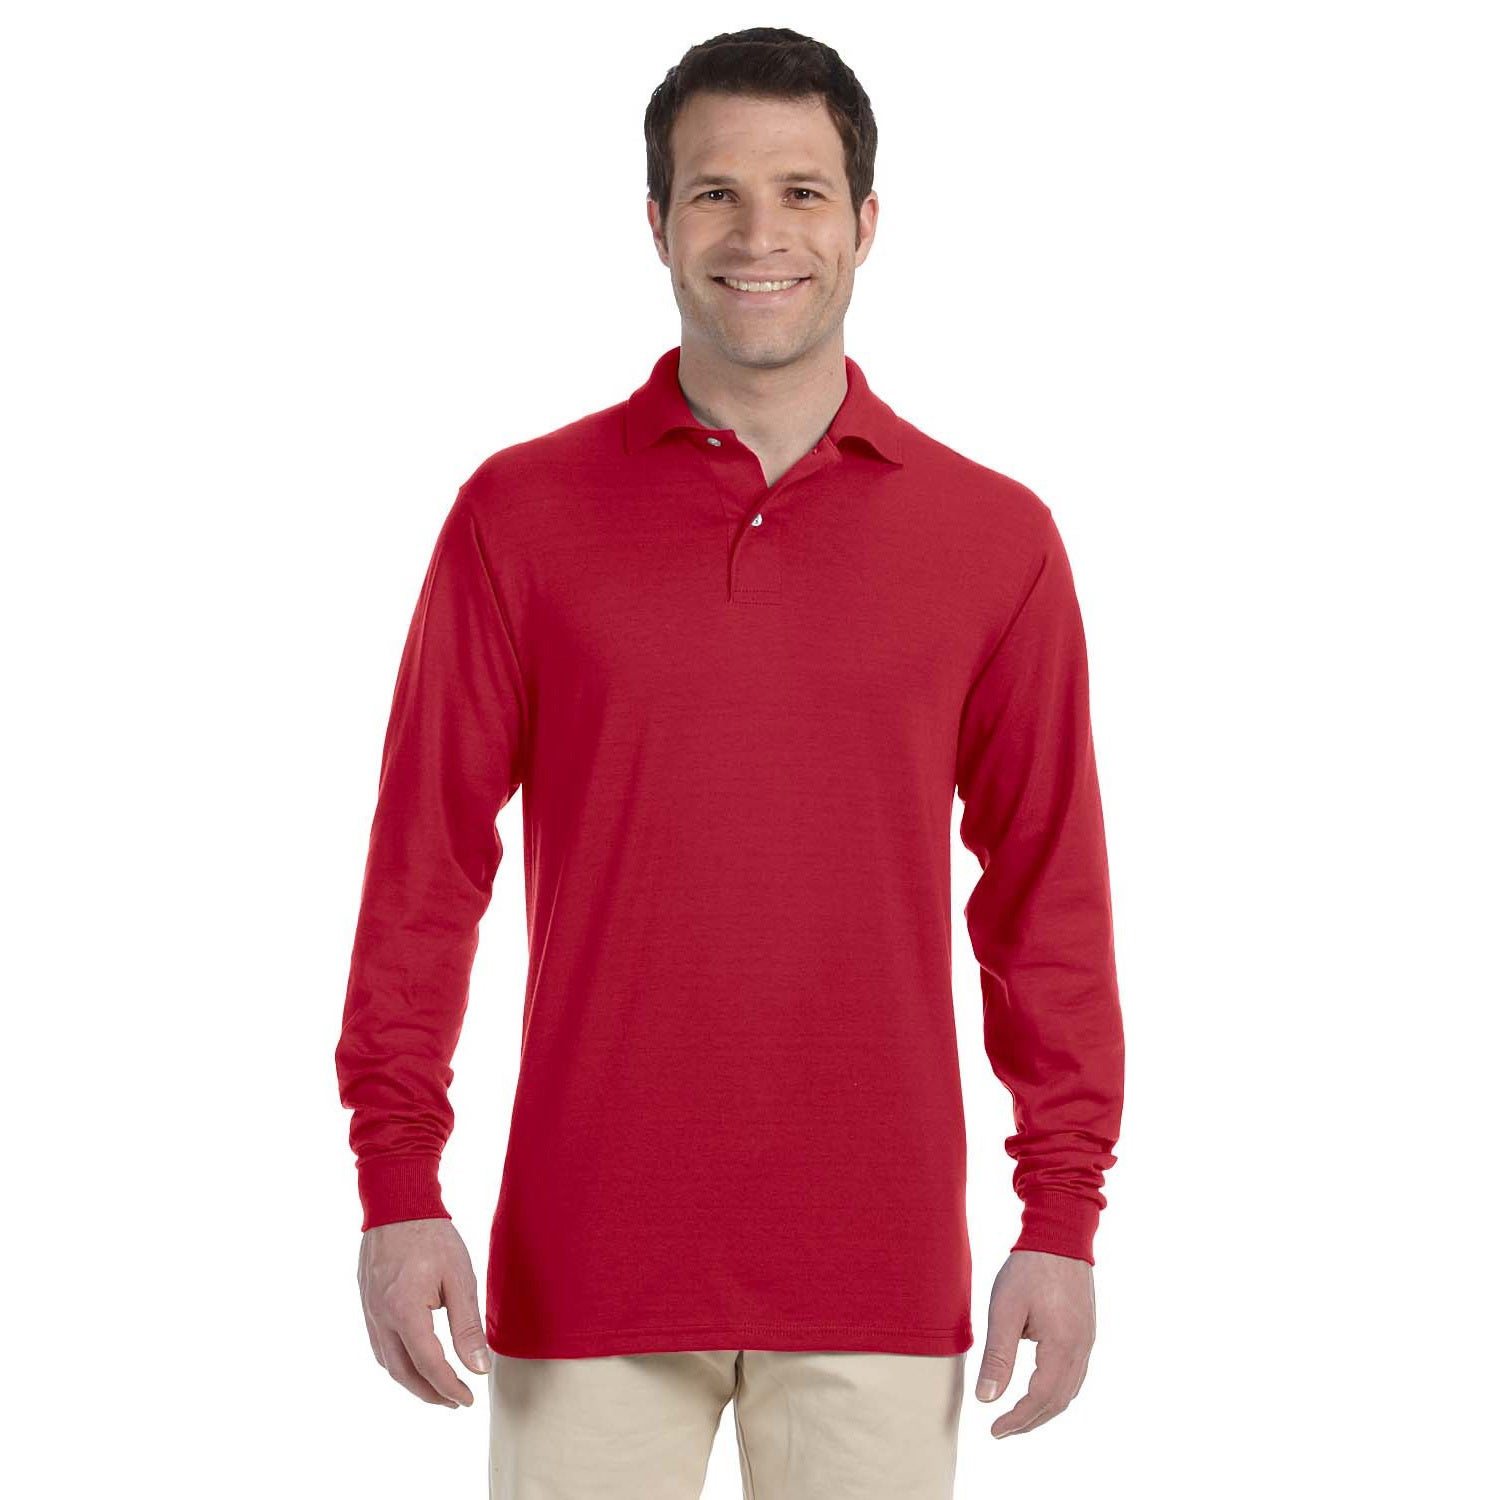 e1e26b1d32c Shop Jerzees Men's 50/50 Long Sleeve Jersey Polo - On Sale - Free Shipping  On Orders Over $45 - Overstock - 8976084